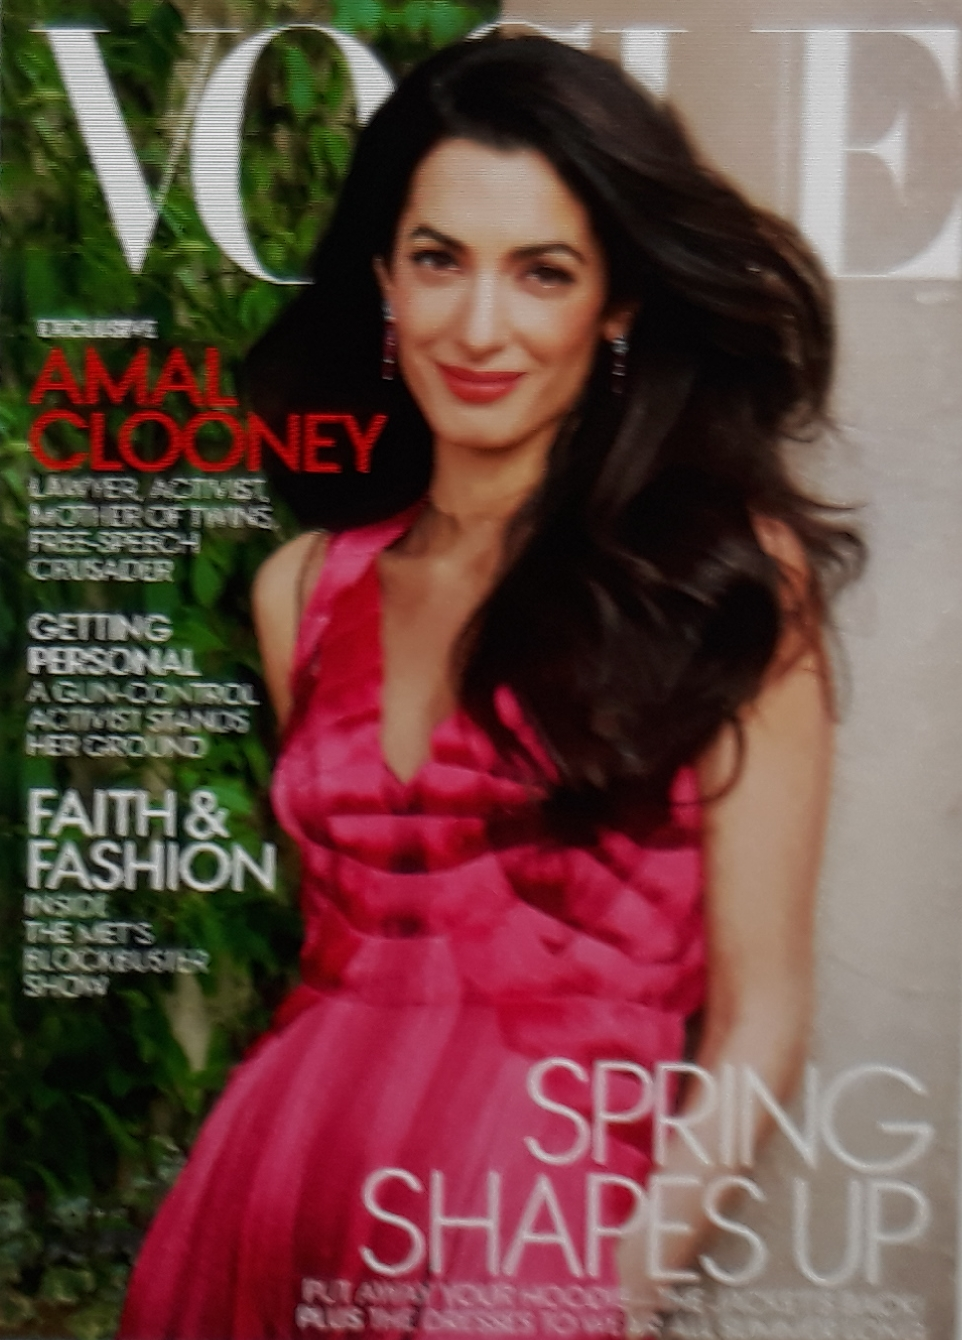 VOGUE NEWS&TRENDS. WORLD Proceedings NEWS. VOGUE USA, New York COVER April2018.        AMAL GLOONEY…FASHION, BEAUTY&LIFESTYLE, Family&Inside Cover…19.4.2018 Popular. Favourite. HXSTYLE.net HEINIS